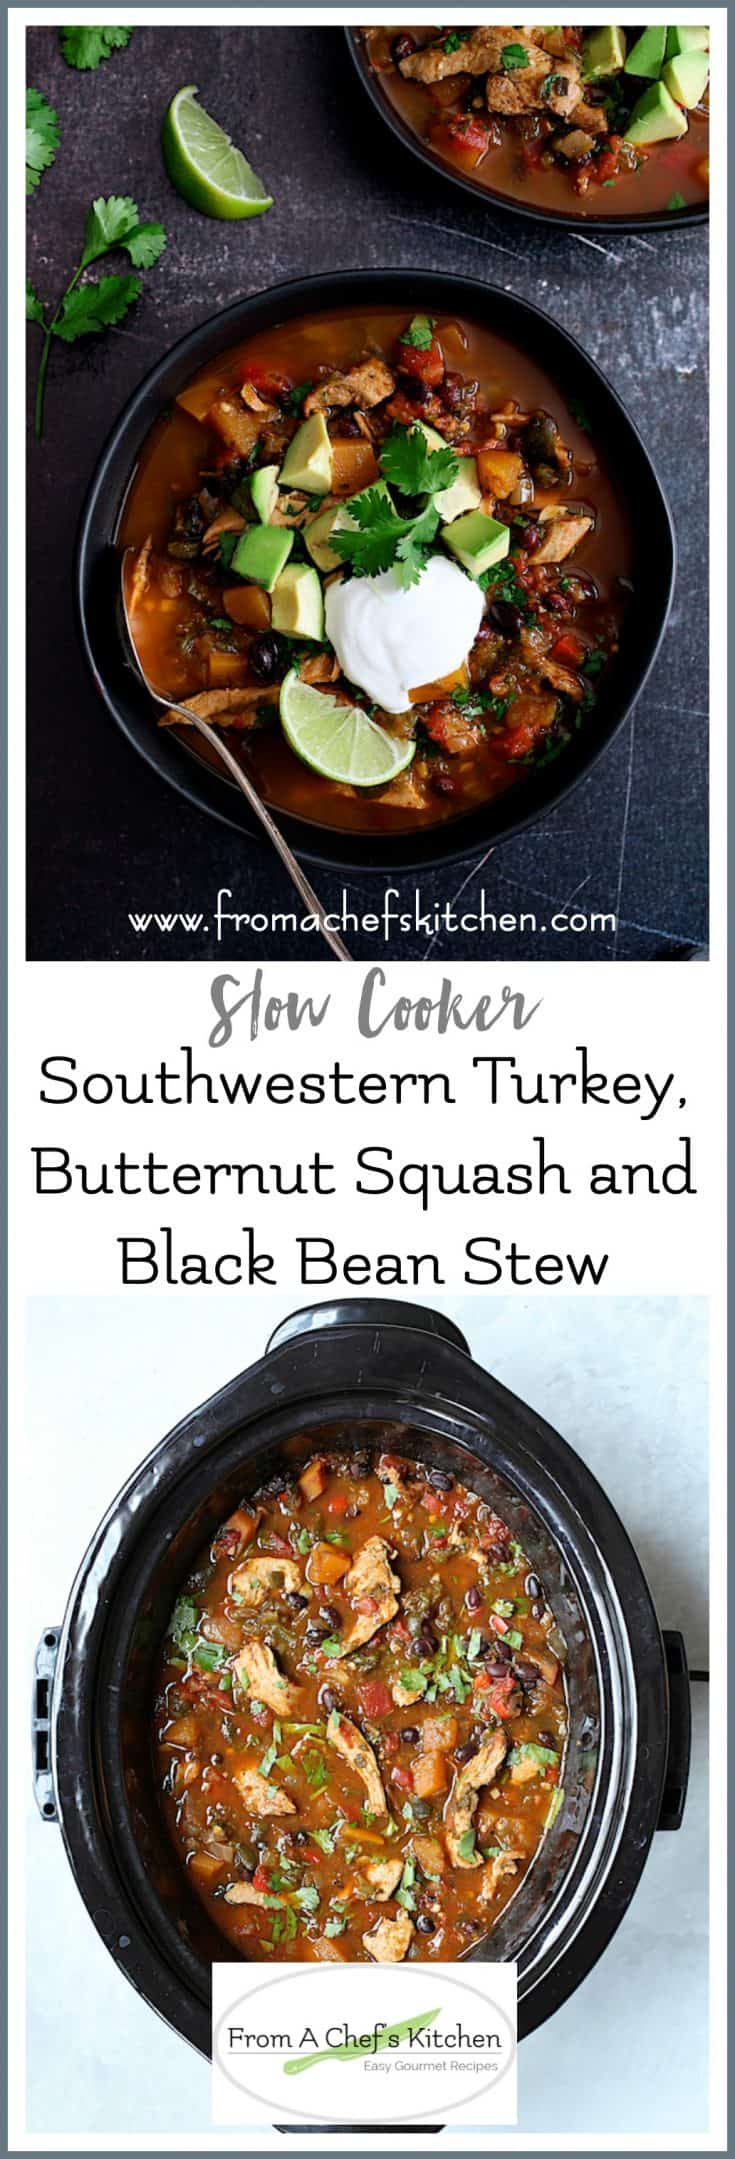 Slow Cooker Southwestern Turkey, Butternut Squash and Black Bean Stew is hearty, flavorful, easy and best of all healthy! #slowcooker #crockpot #southwesternfood #turkey #stew #butternutsquash #blackbeans